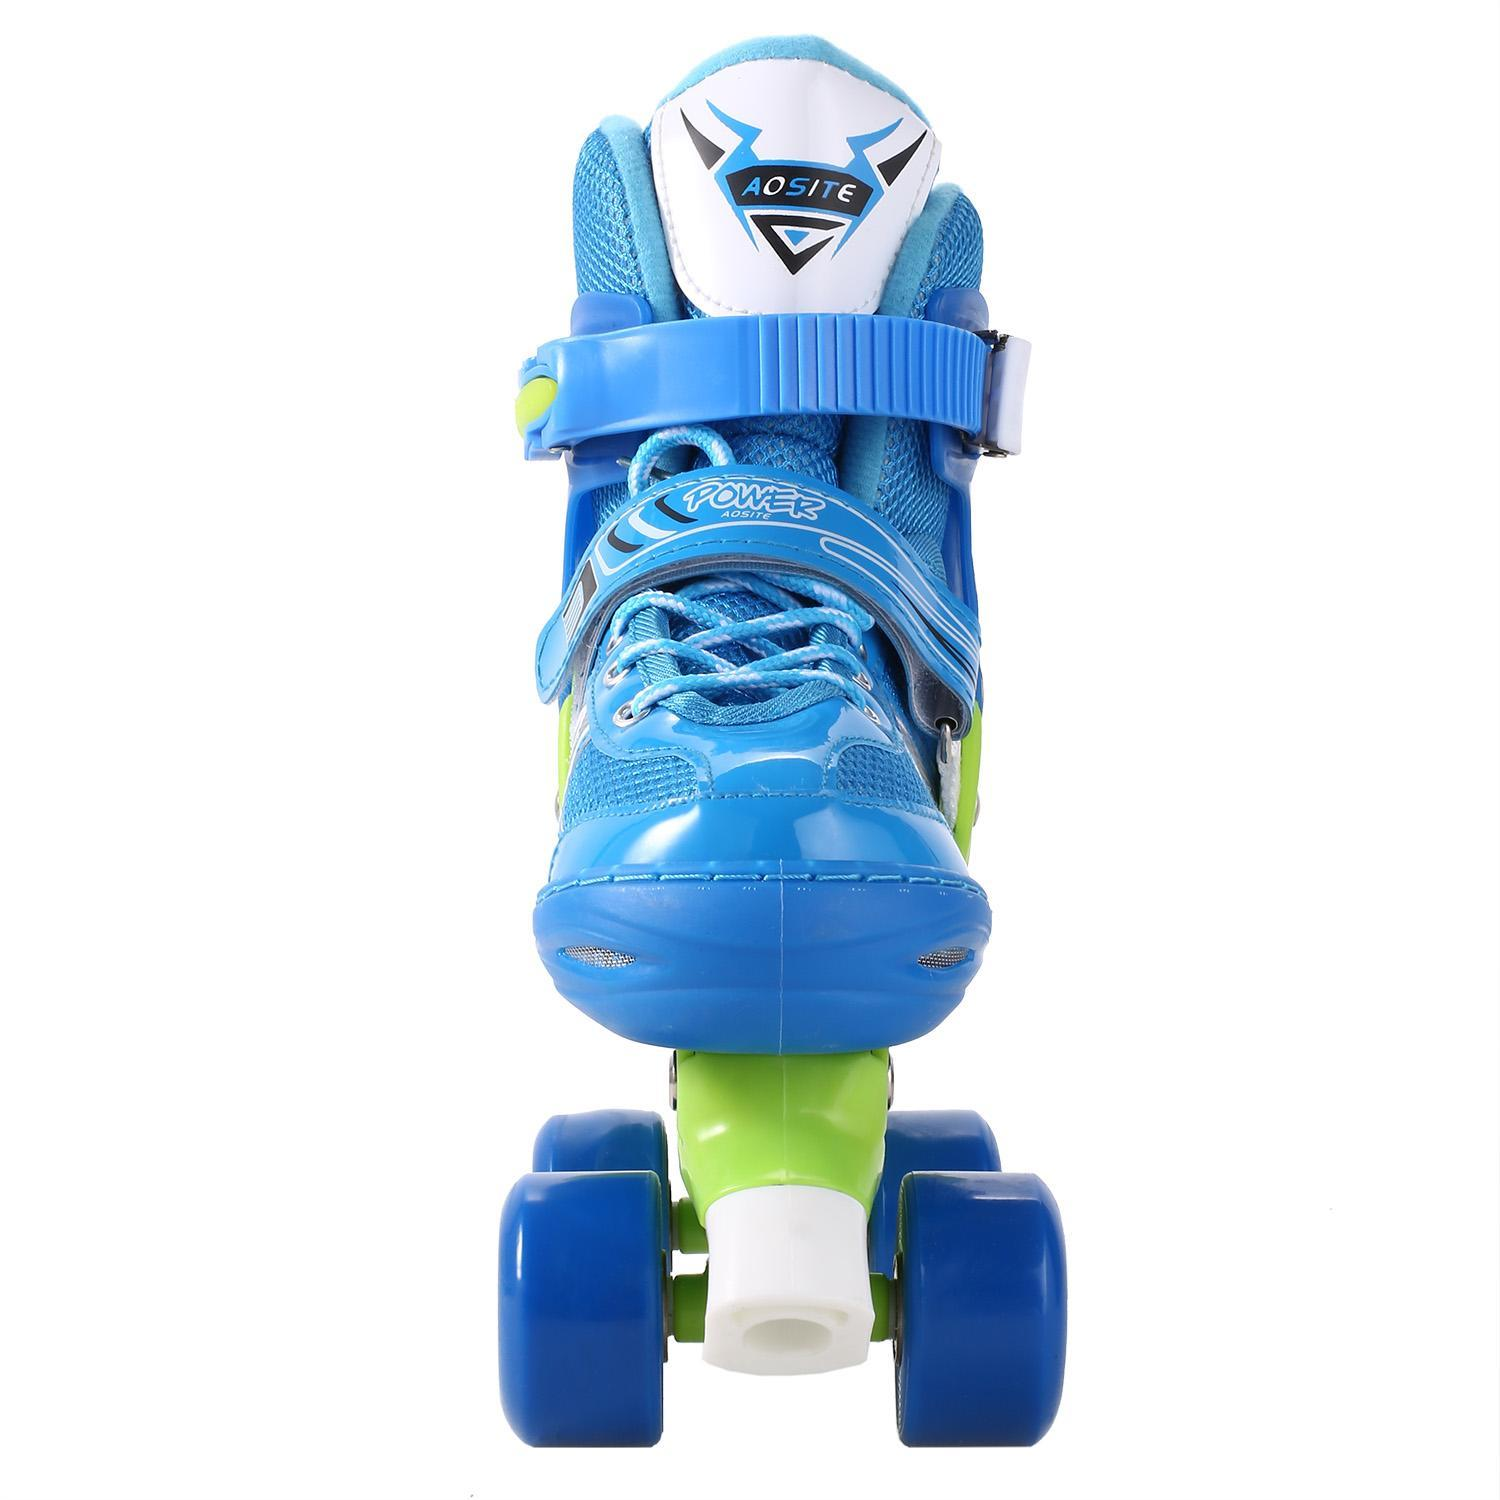 Kimimart Adjule Kids Roller Skates Pvc Wheel Triple Lock Mesh Breathable Rollerblades For Beginners Toddlers Children Boys S